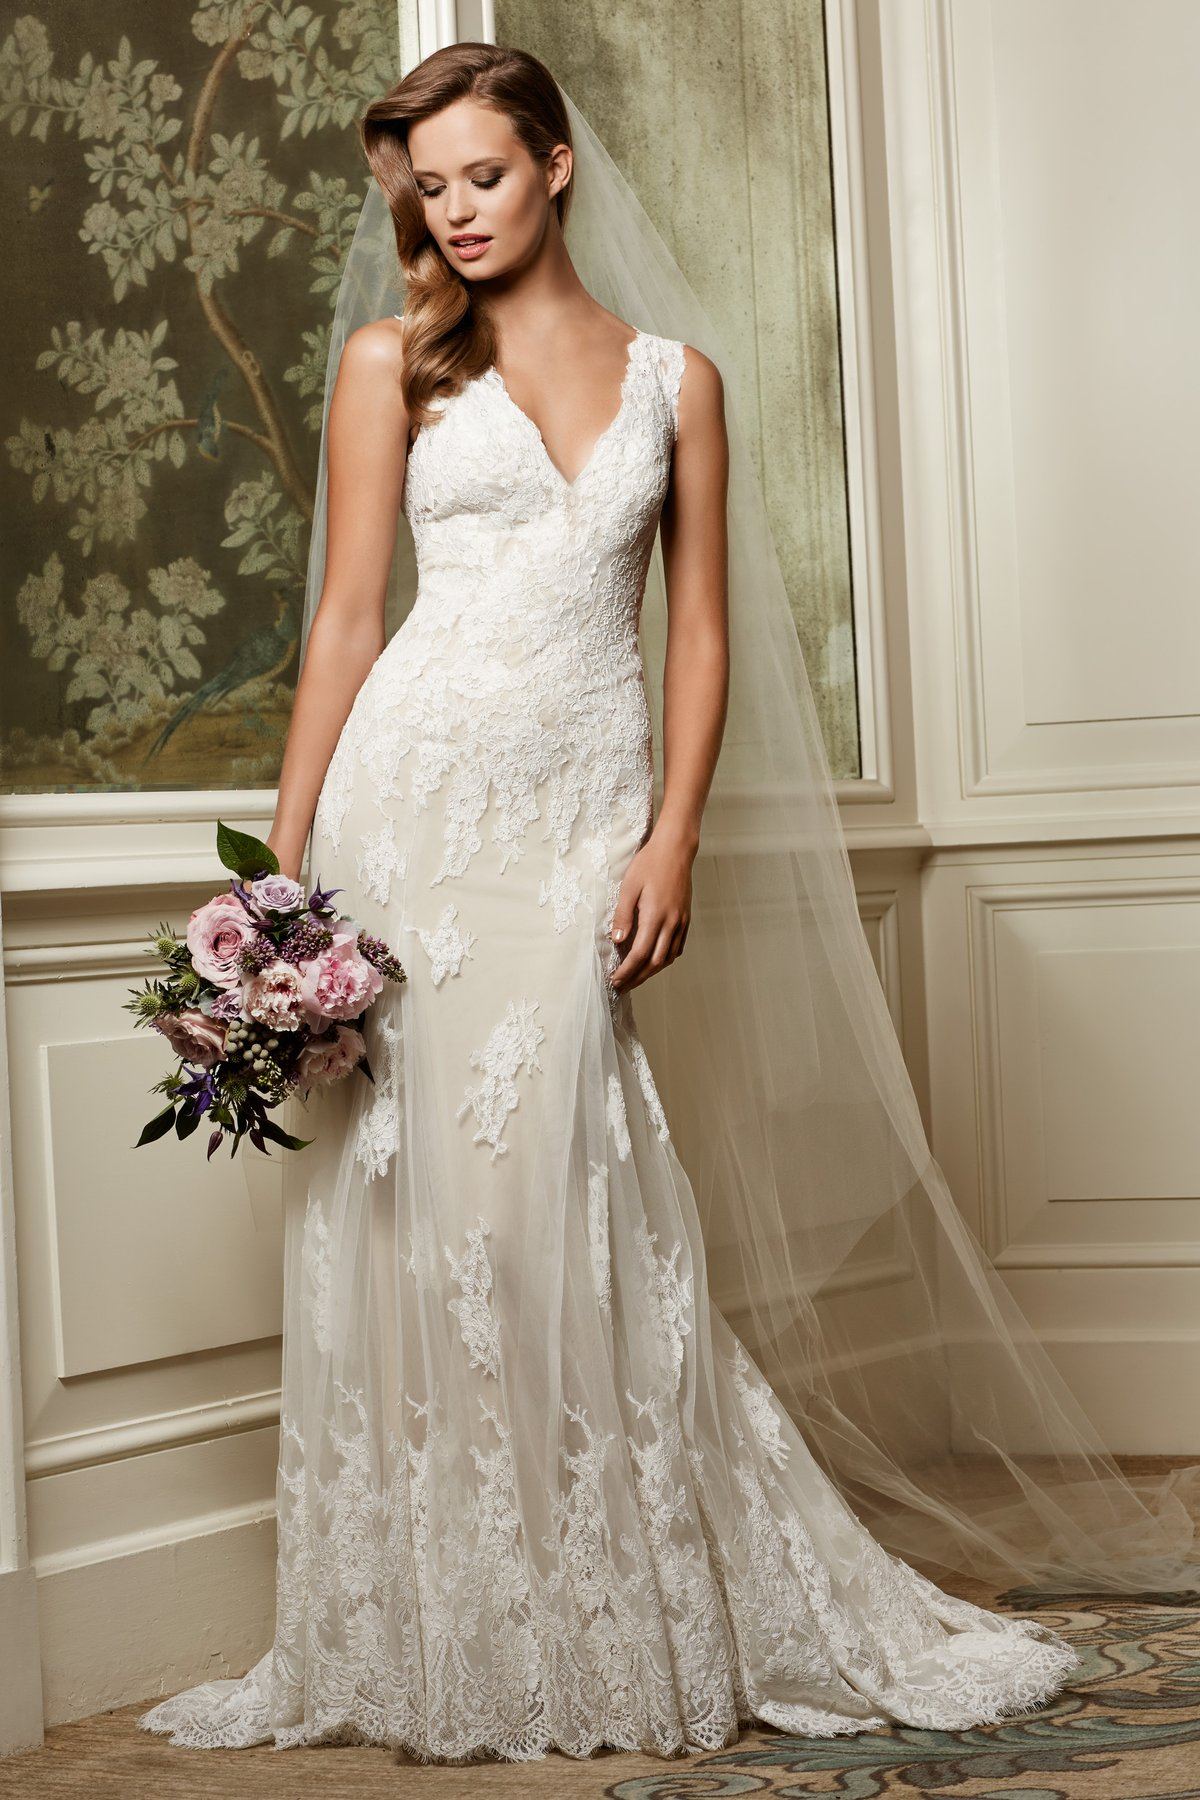 Lori G Wedding Dresses : Francine by wtoo wedding dress from lori g bridal derby